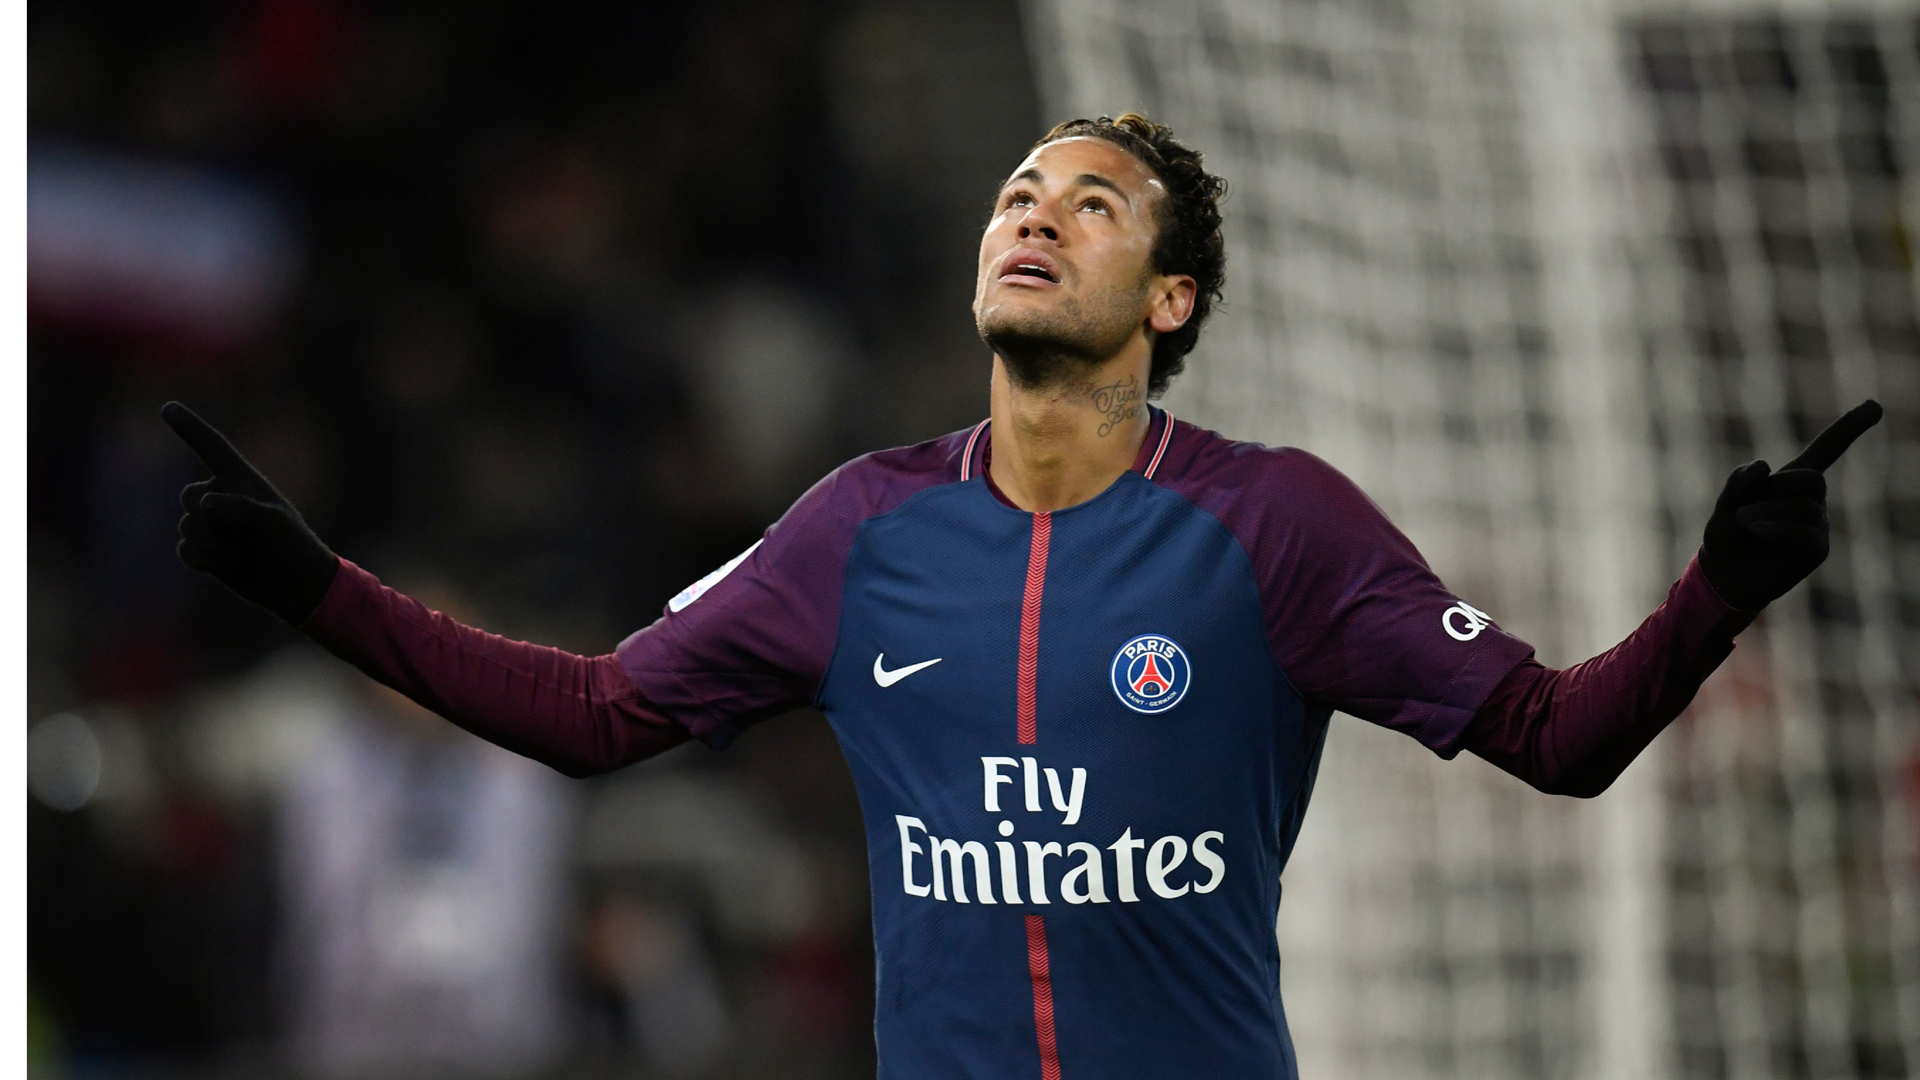 Neymar scores four goals in PSG's win vs. Dijon, gets booed